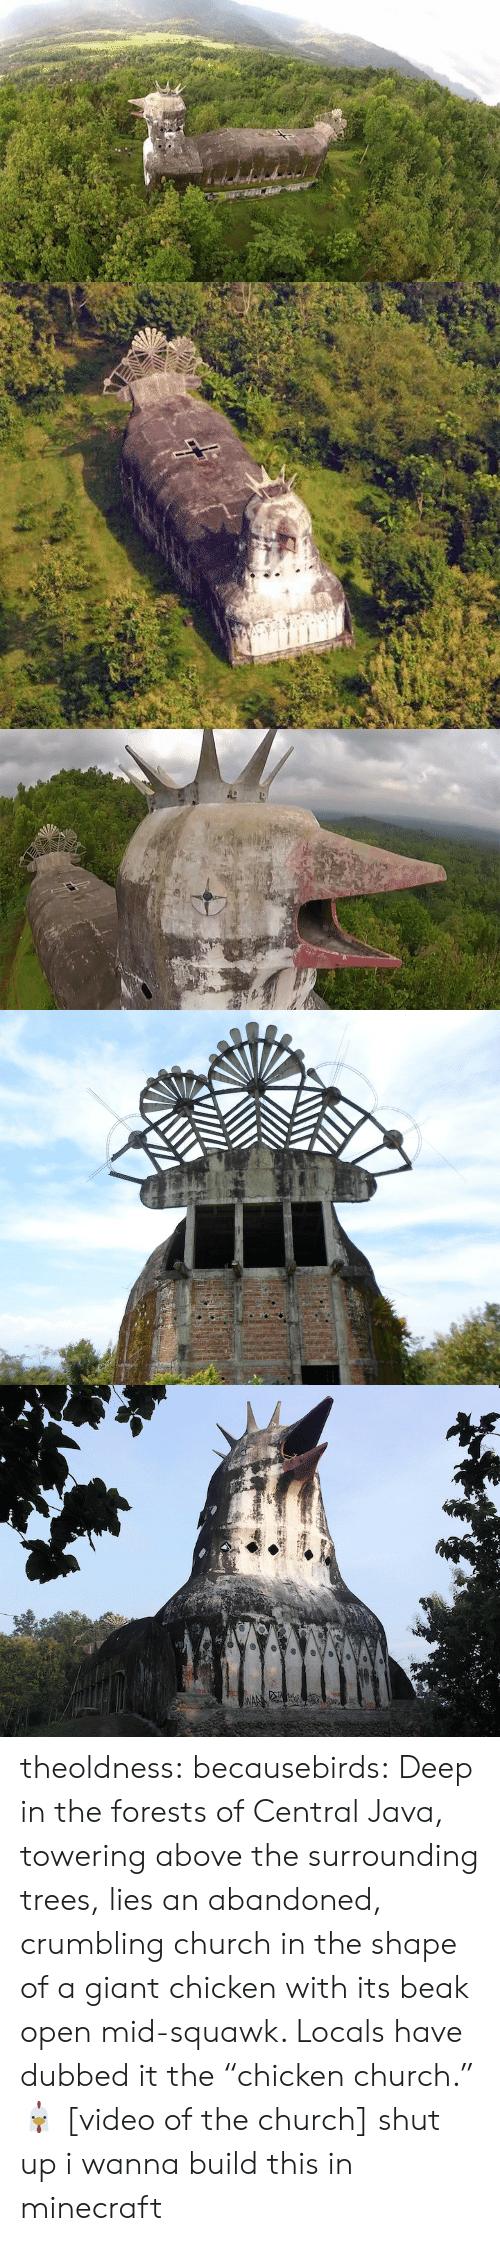 "Chicken Church: theoldness:  becausebirds:  Deep in the forests of Central Java, towering above the surrounding trees, lies an abandoned, crumbling church in the shape of a giant chicken with its beak open mid-squawk. Locals have dubbed it the ""chicken church."" 🐔 [video of the church]   shut up i wanna build this in minecraft"